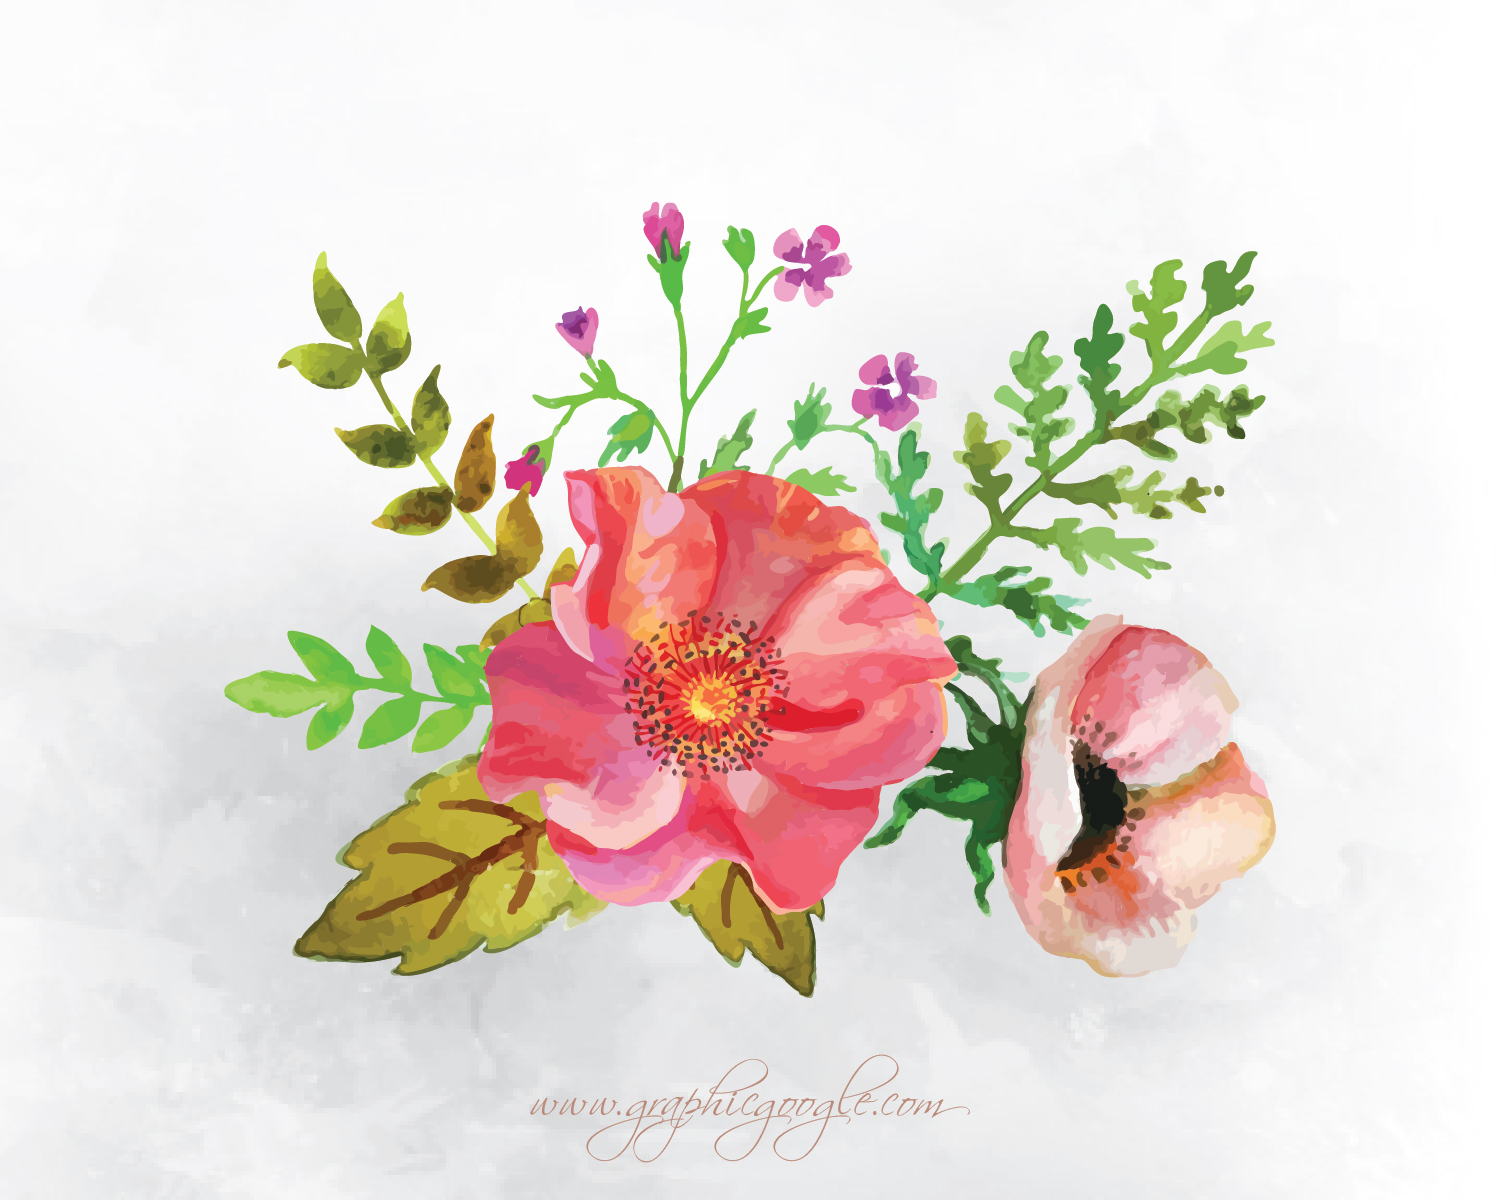 9 Free Watercolor Flower Vectors For Designers-04